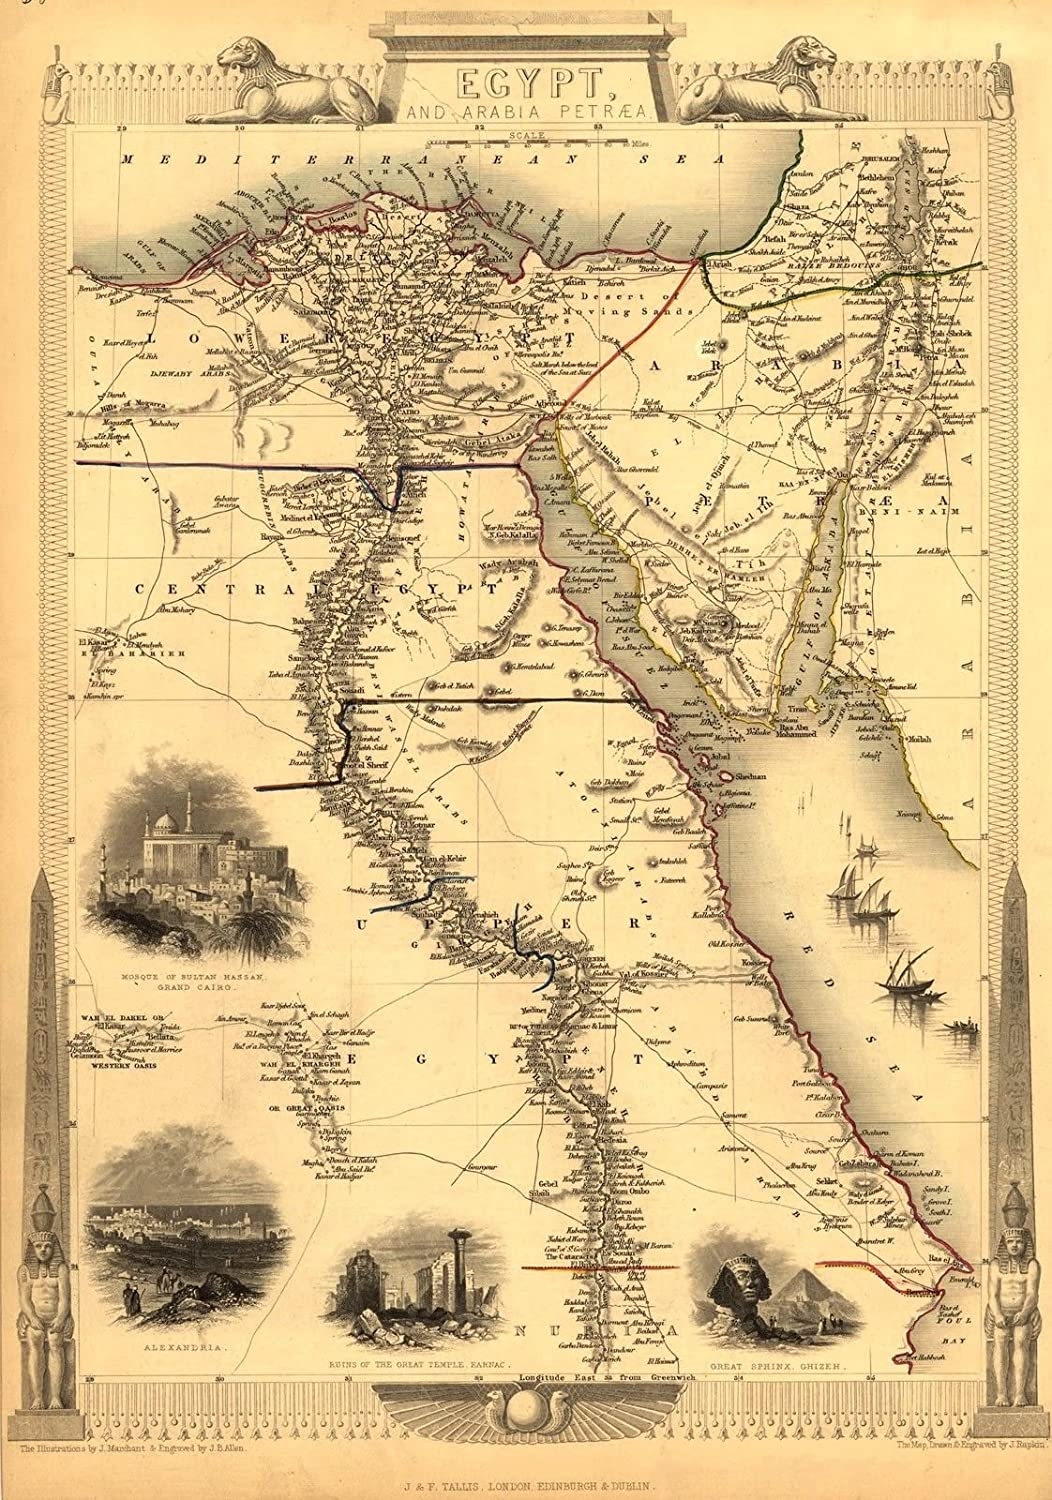 A3 Egypt & Arabia Petraea (Egyptian Map Displays Mediterranean & Dead Seas (in the North) to Lower, Central & Upper Egypt (in the South) and Arabia in the East), Reproduction Antique Map Published c1850 by J & F Tallis - A3, Size Approxima